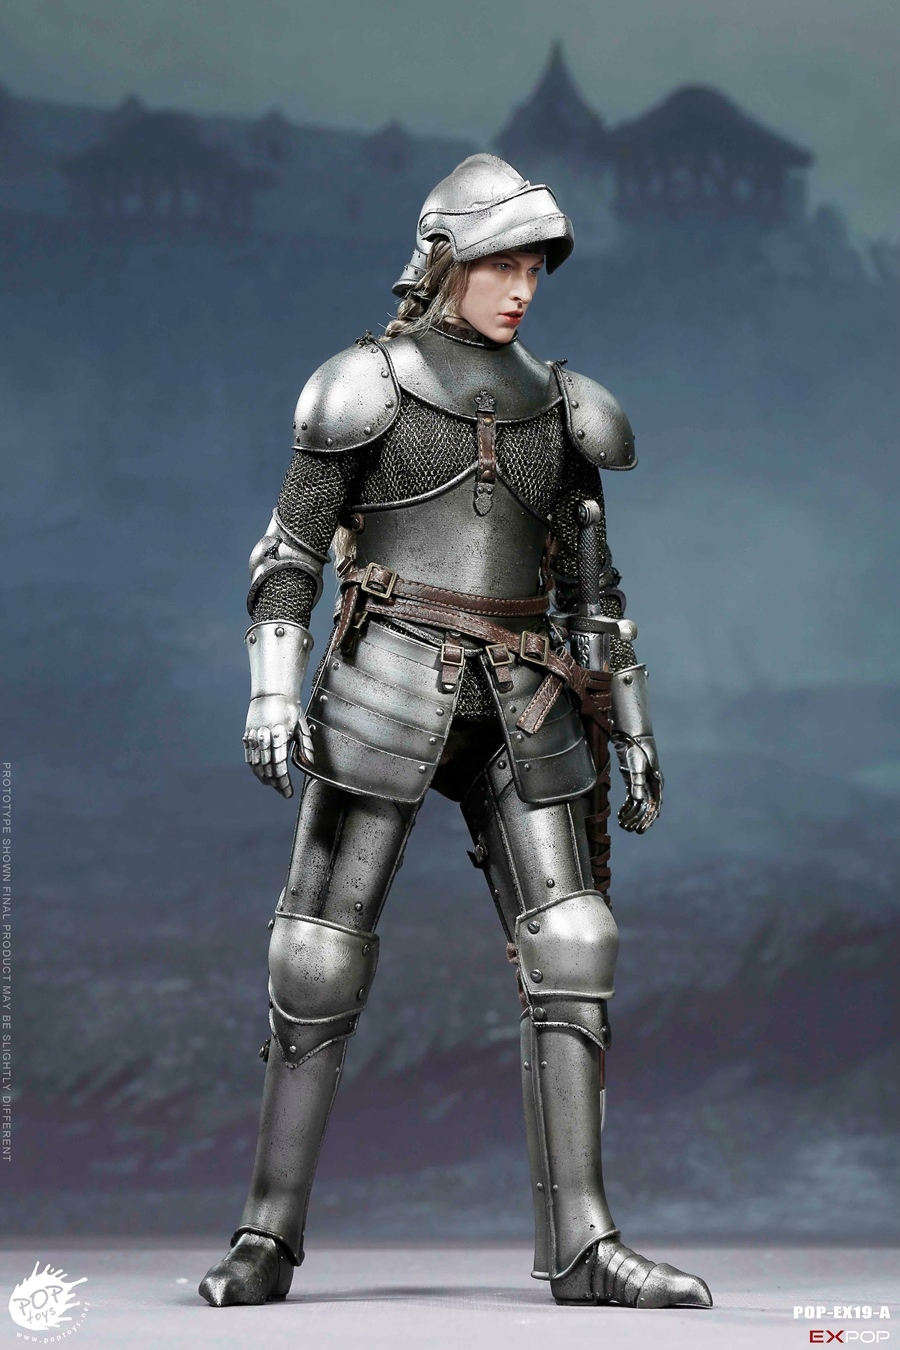 NEW PRODUCT: POPTOYS New Products: 1/6 St. Knights - Assault Edition & Triumph Edition & Iron Armor (POP-EX19 ABC) 442